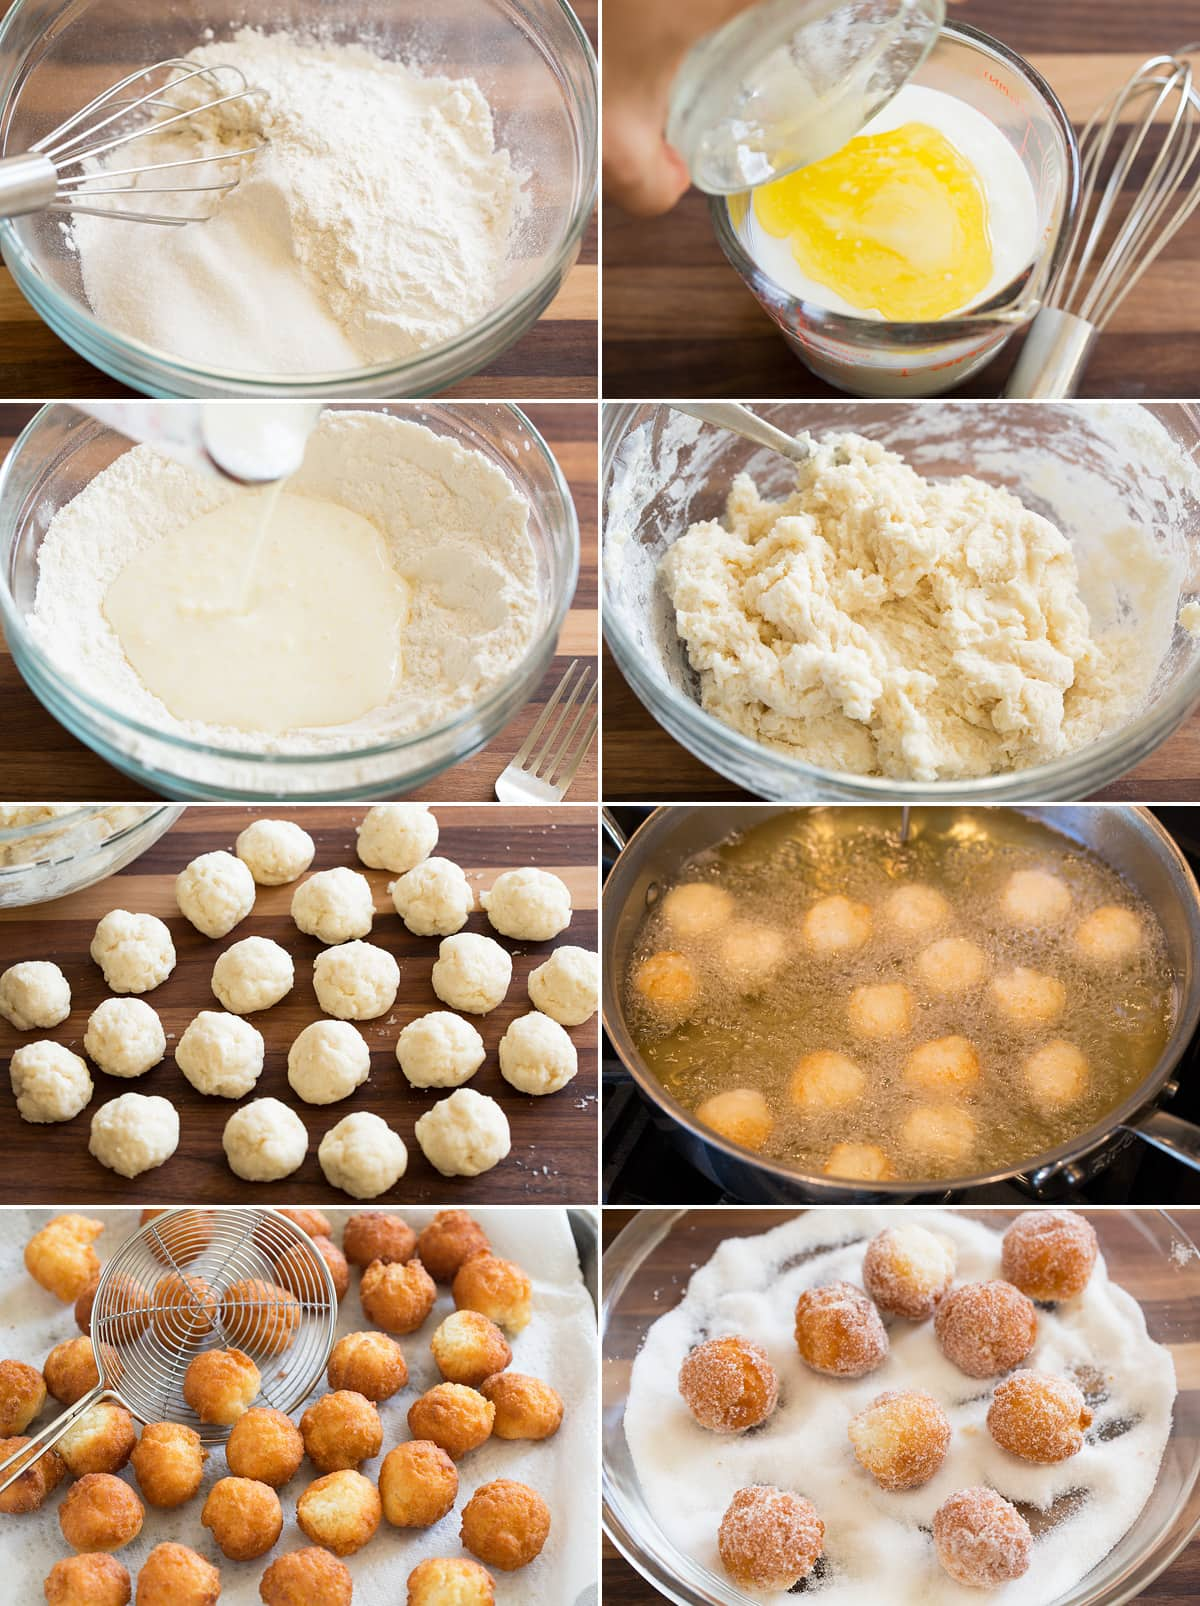 Image showing steps to making easy homemade donuts dough and frying donuts.